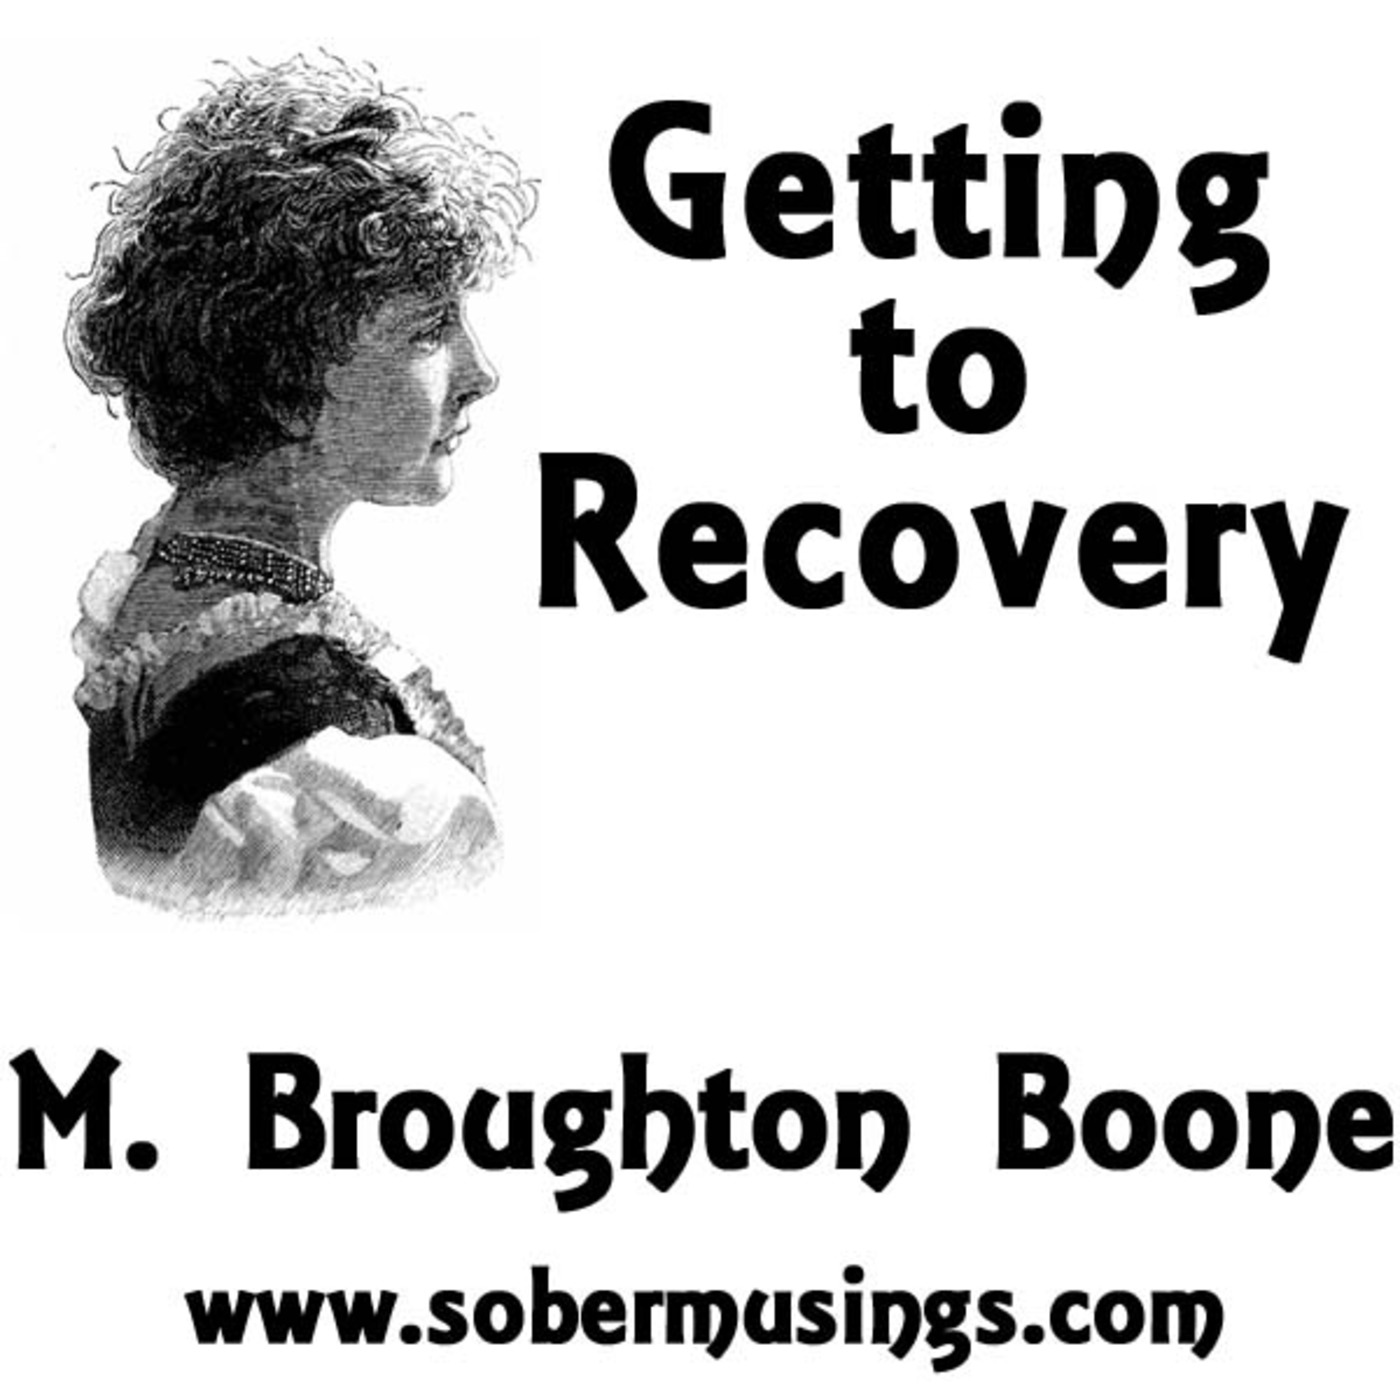 Getting to Recovery